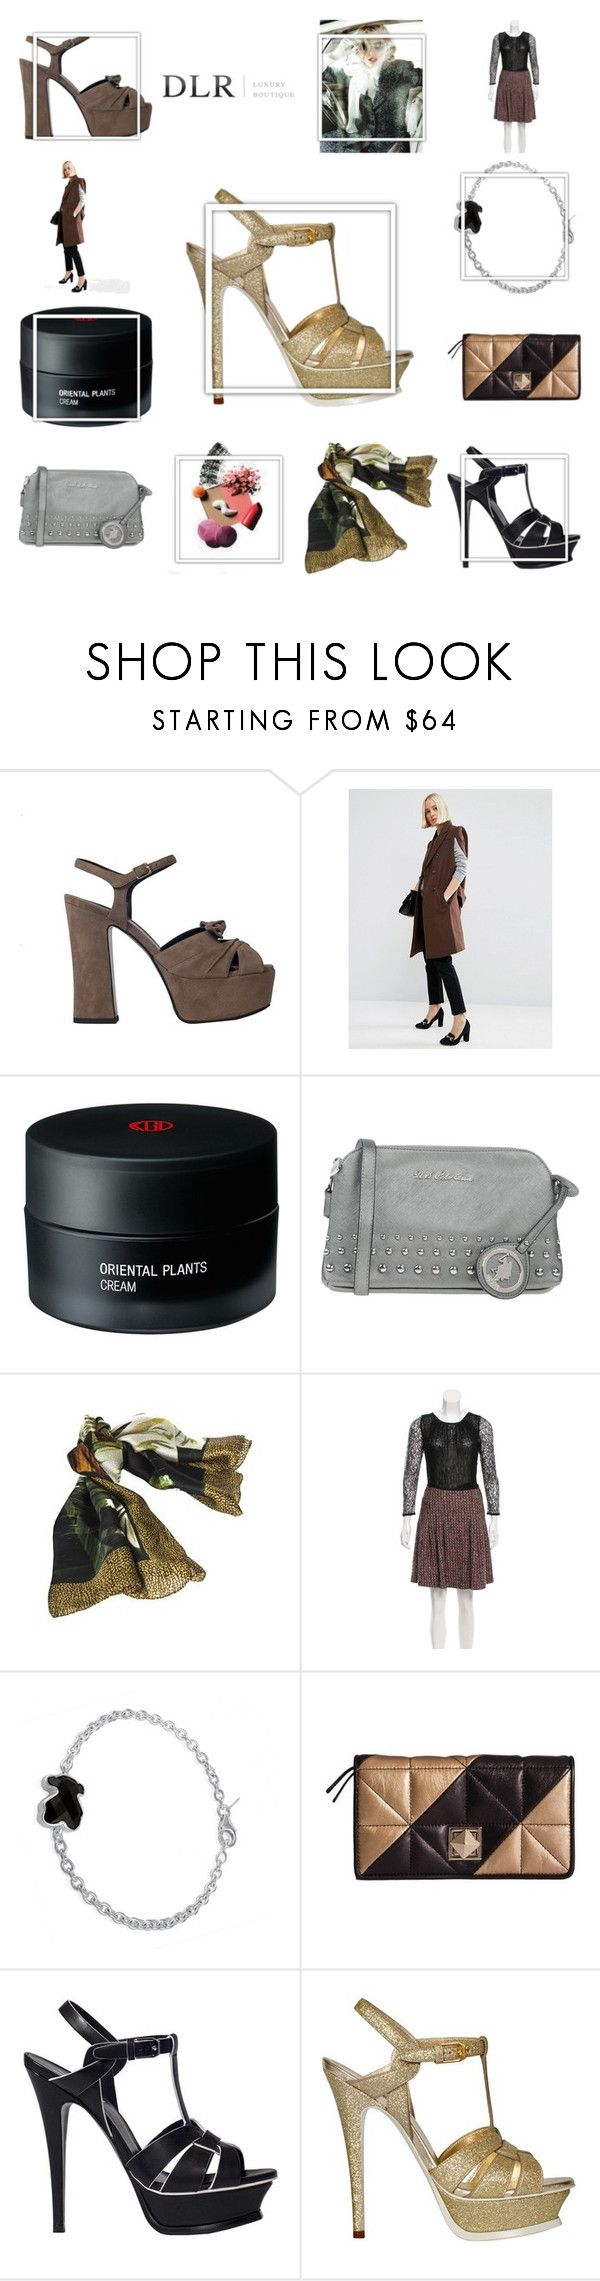 """SALES! DLRBOUTIQUE"" by cheapchicceleb ❤ liked on Polyvore featuring Yves Saint Laurent, ASOS, Koh Gen Do, U.S. Polo Assn., Borbonese, RED Valentino, TOUS, Sonia Rykiel, Heels and sales"